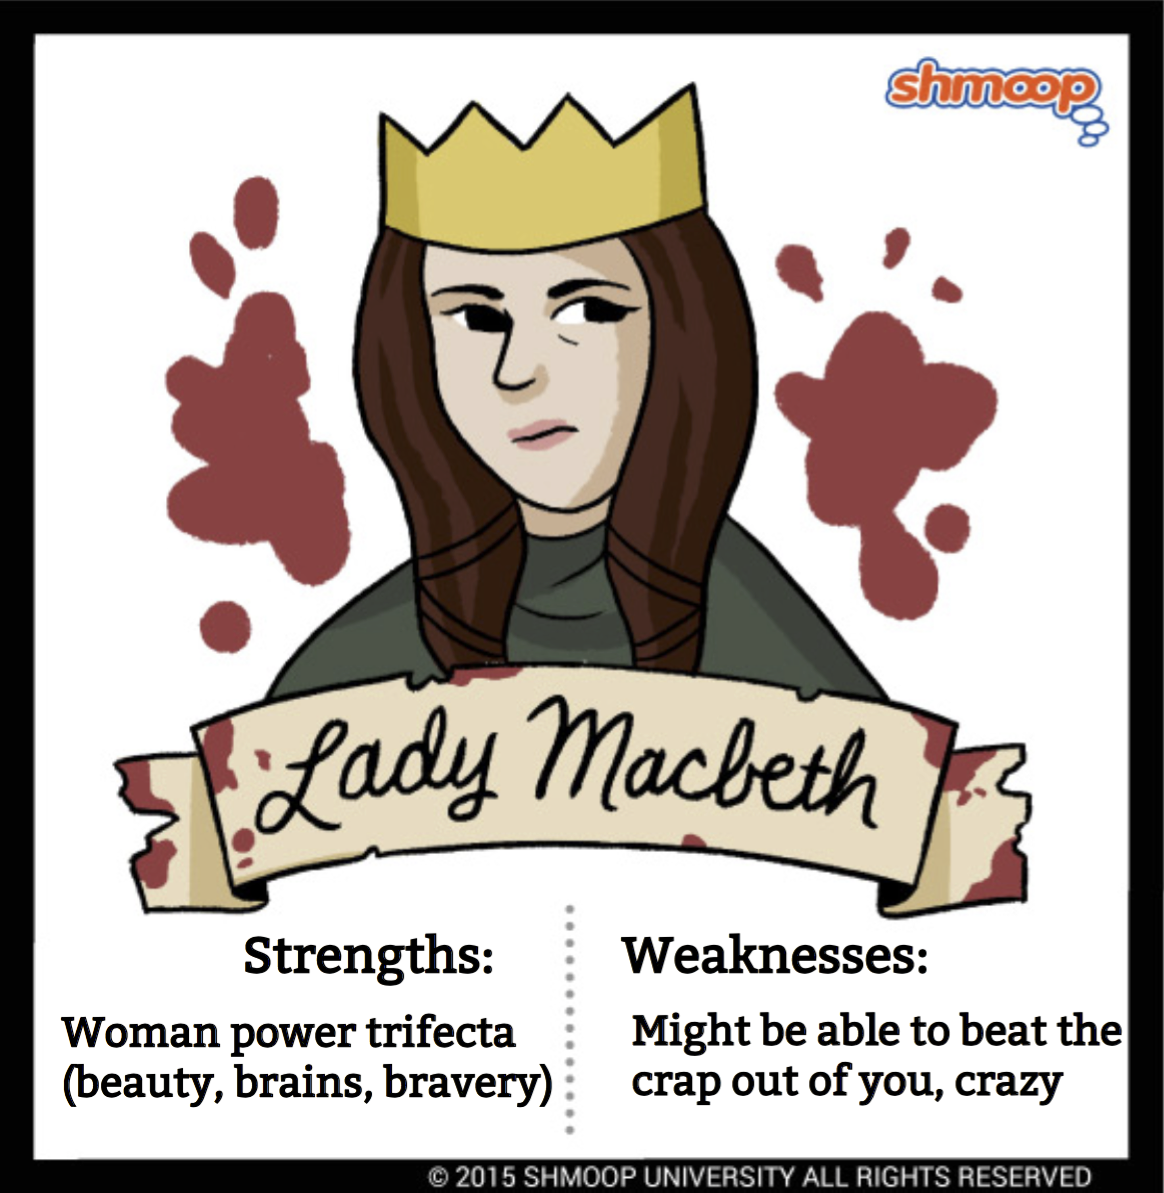 an analysis of the lady macbeth and macbeth a play by william shakespeare Character analysis of lady macbeth lady macbeth is the one of the most important characters in william shakespeare's macbeth and at the same time probably the most.